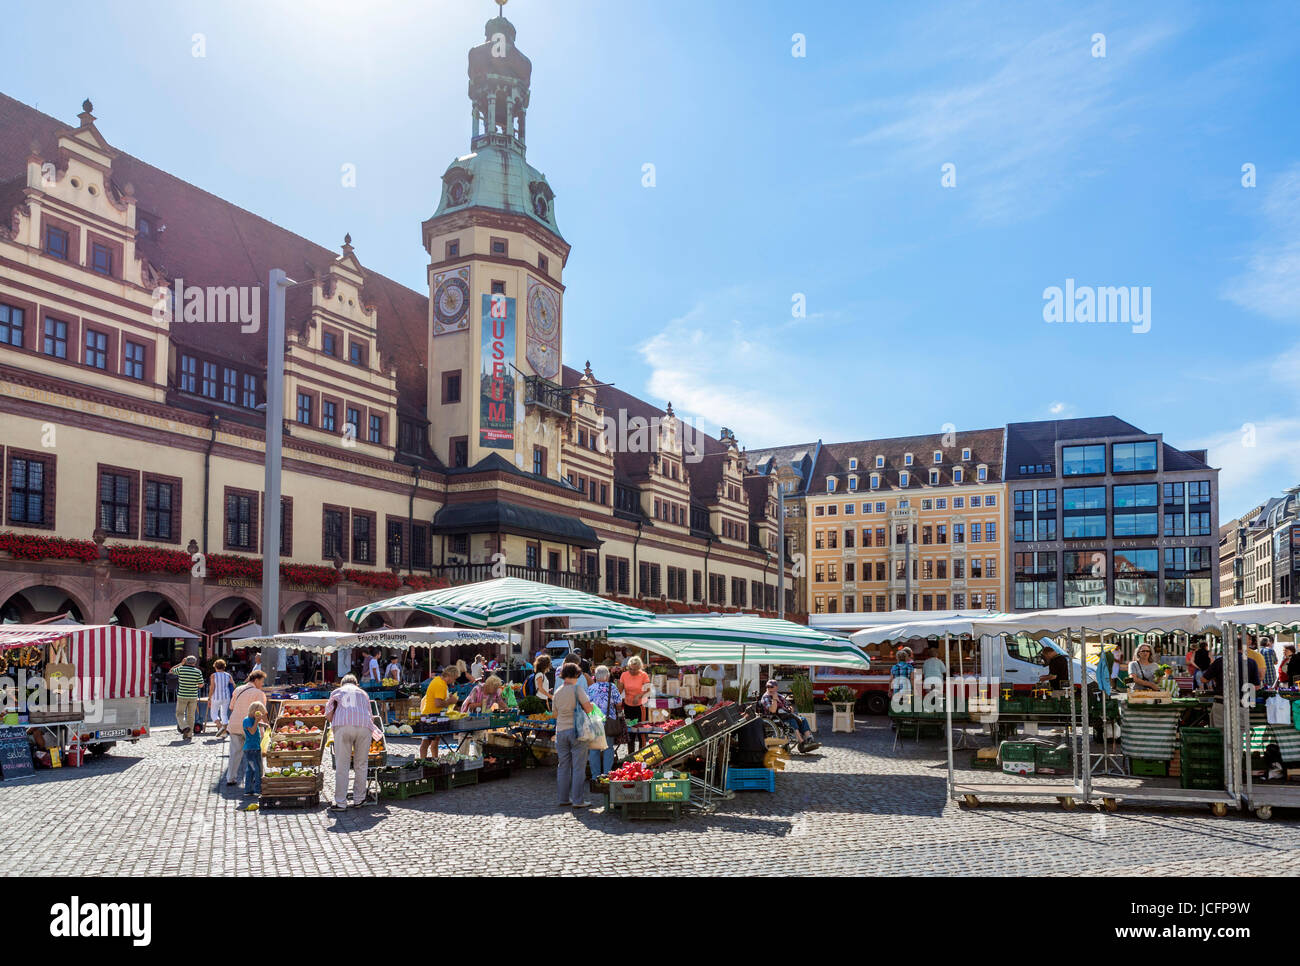 Market in the Markt (Market Square) in front of the Altes Rathaus (Old Town Hall), Leipzig, Saxony, Germany - Stock Image